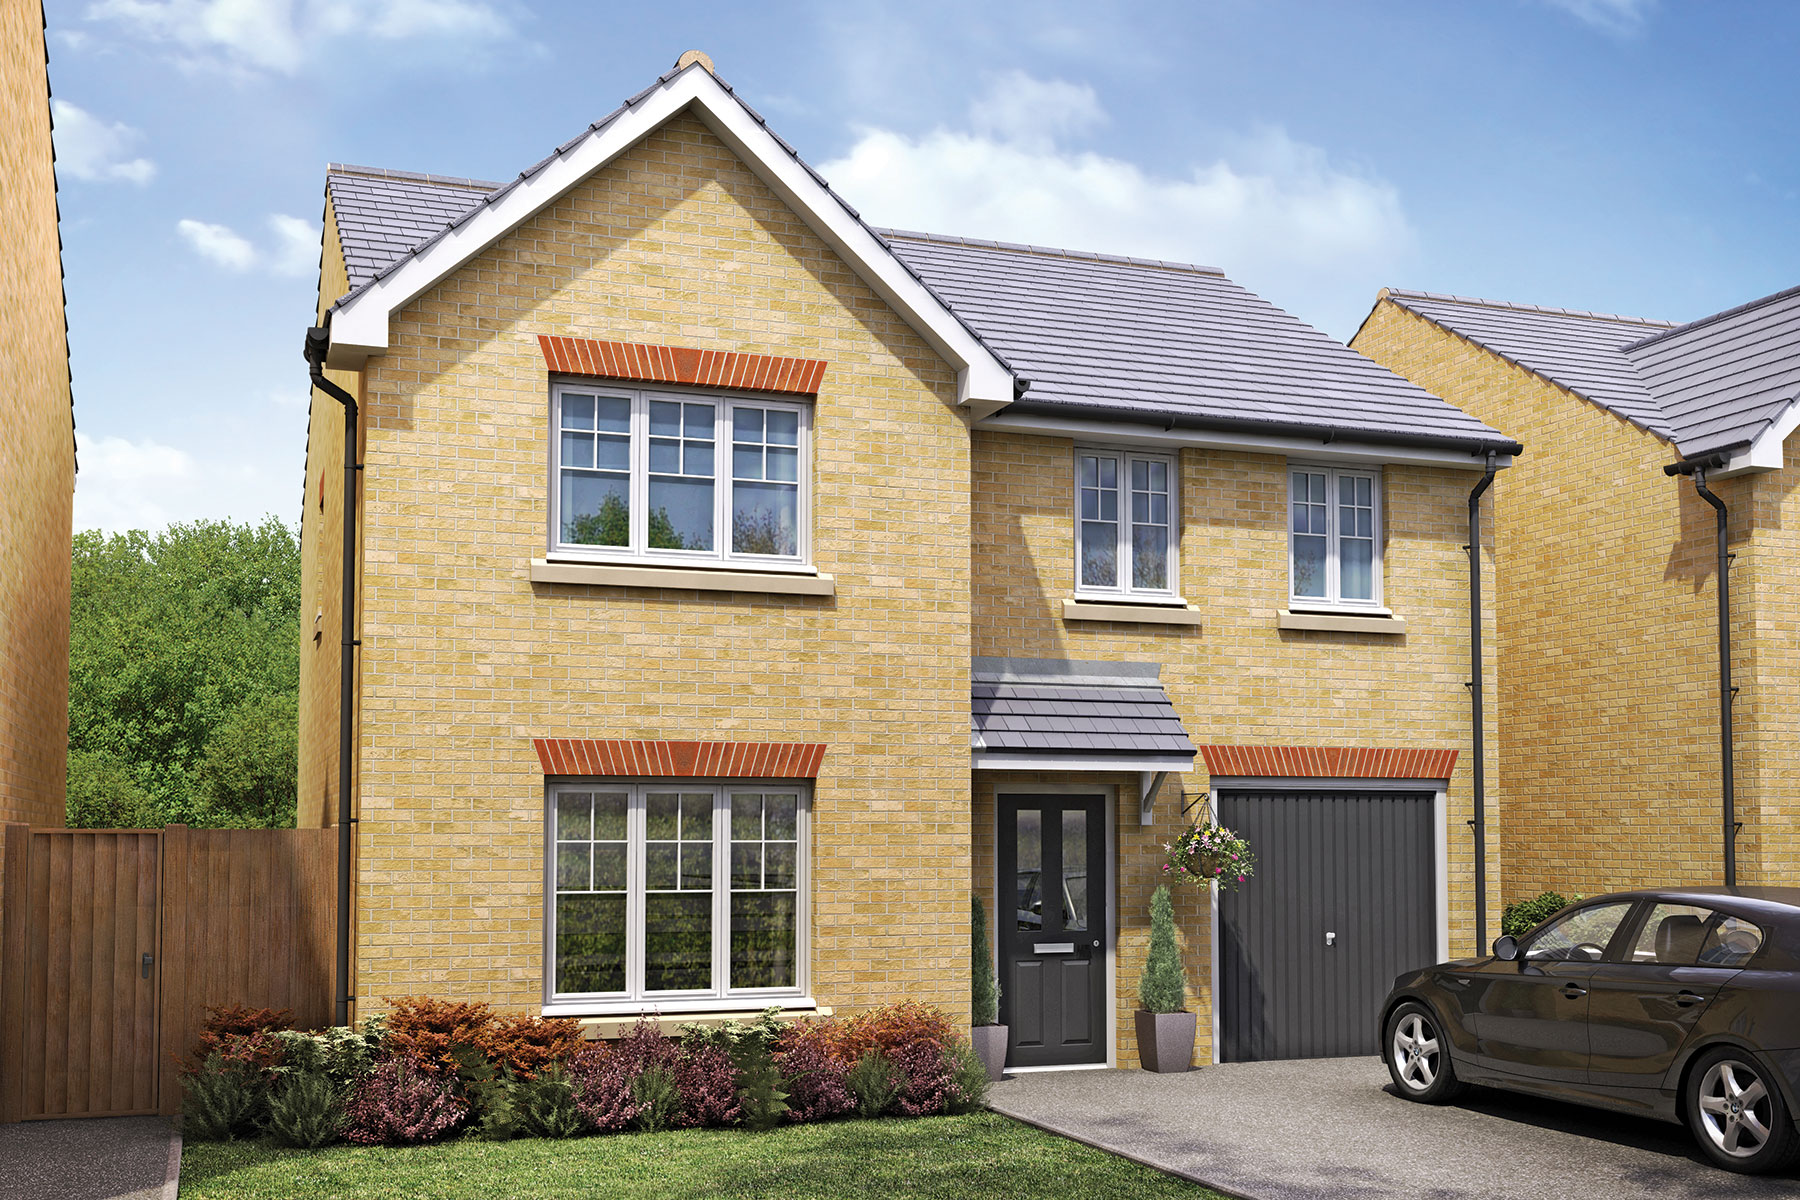 Taylor Wimpey - Exterior - The Eynsham - 4 bedroom new home